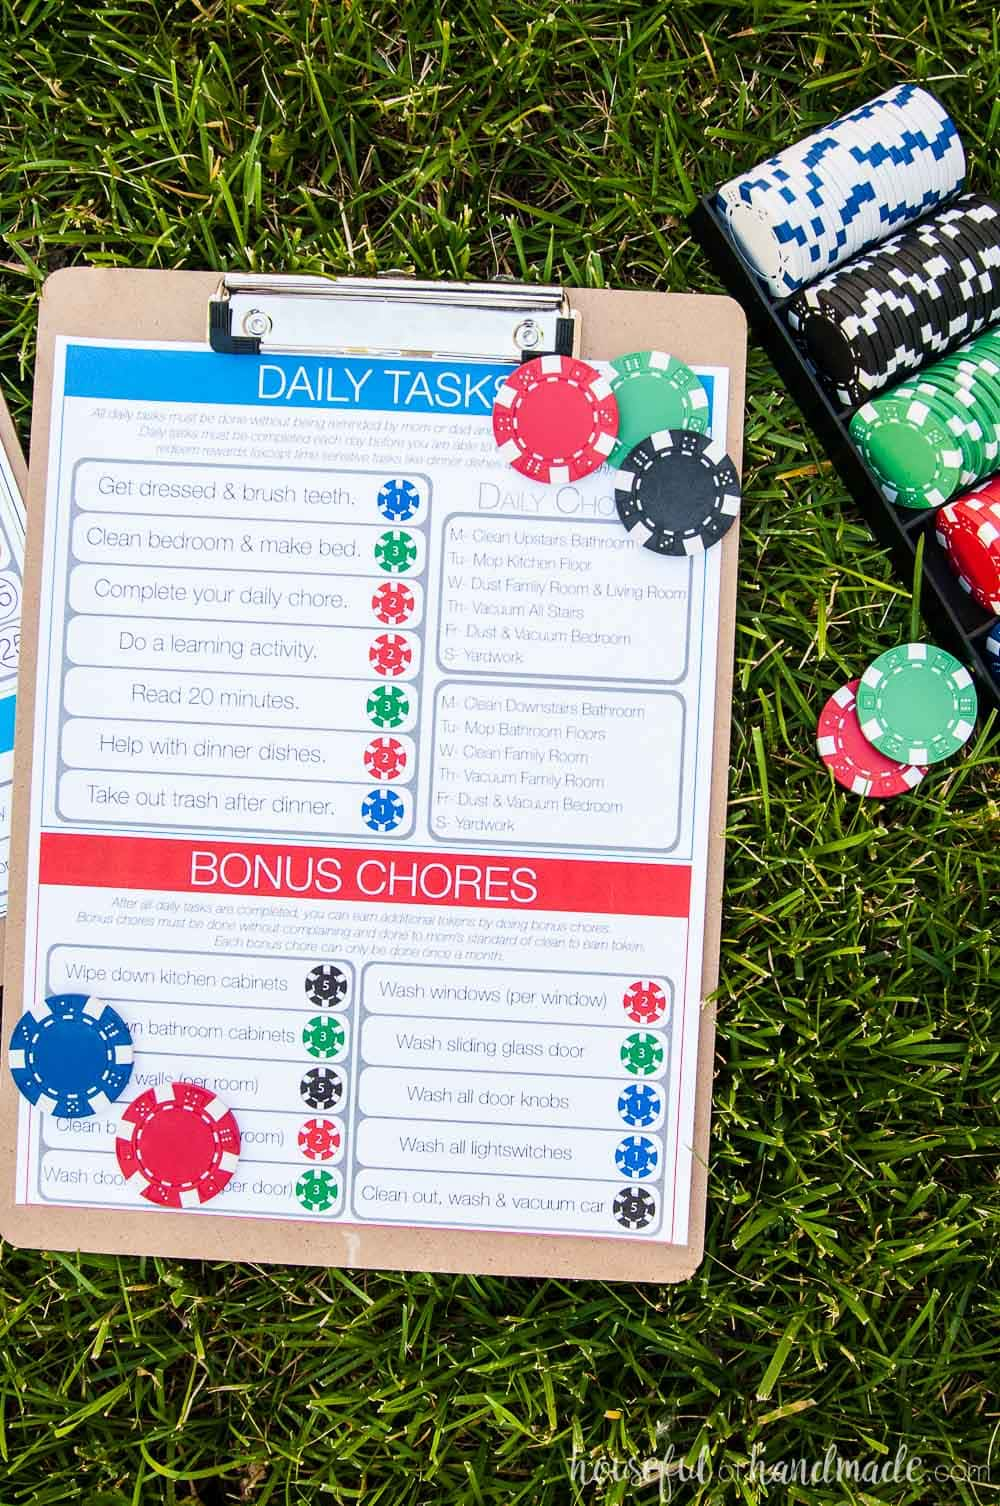 Use poker chips to create a kids chore system that works. Get all the details on our amazing chore chart at Housefulofhandmade.com.